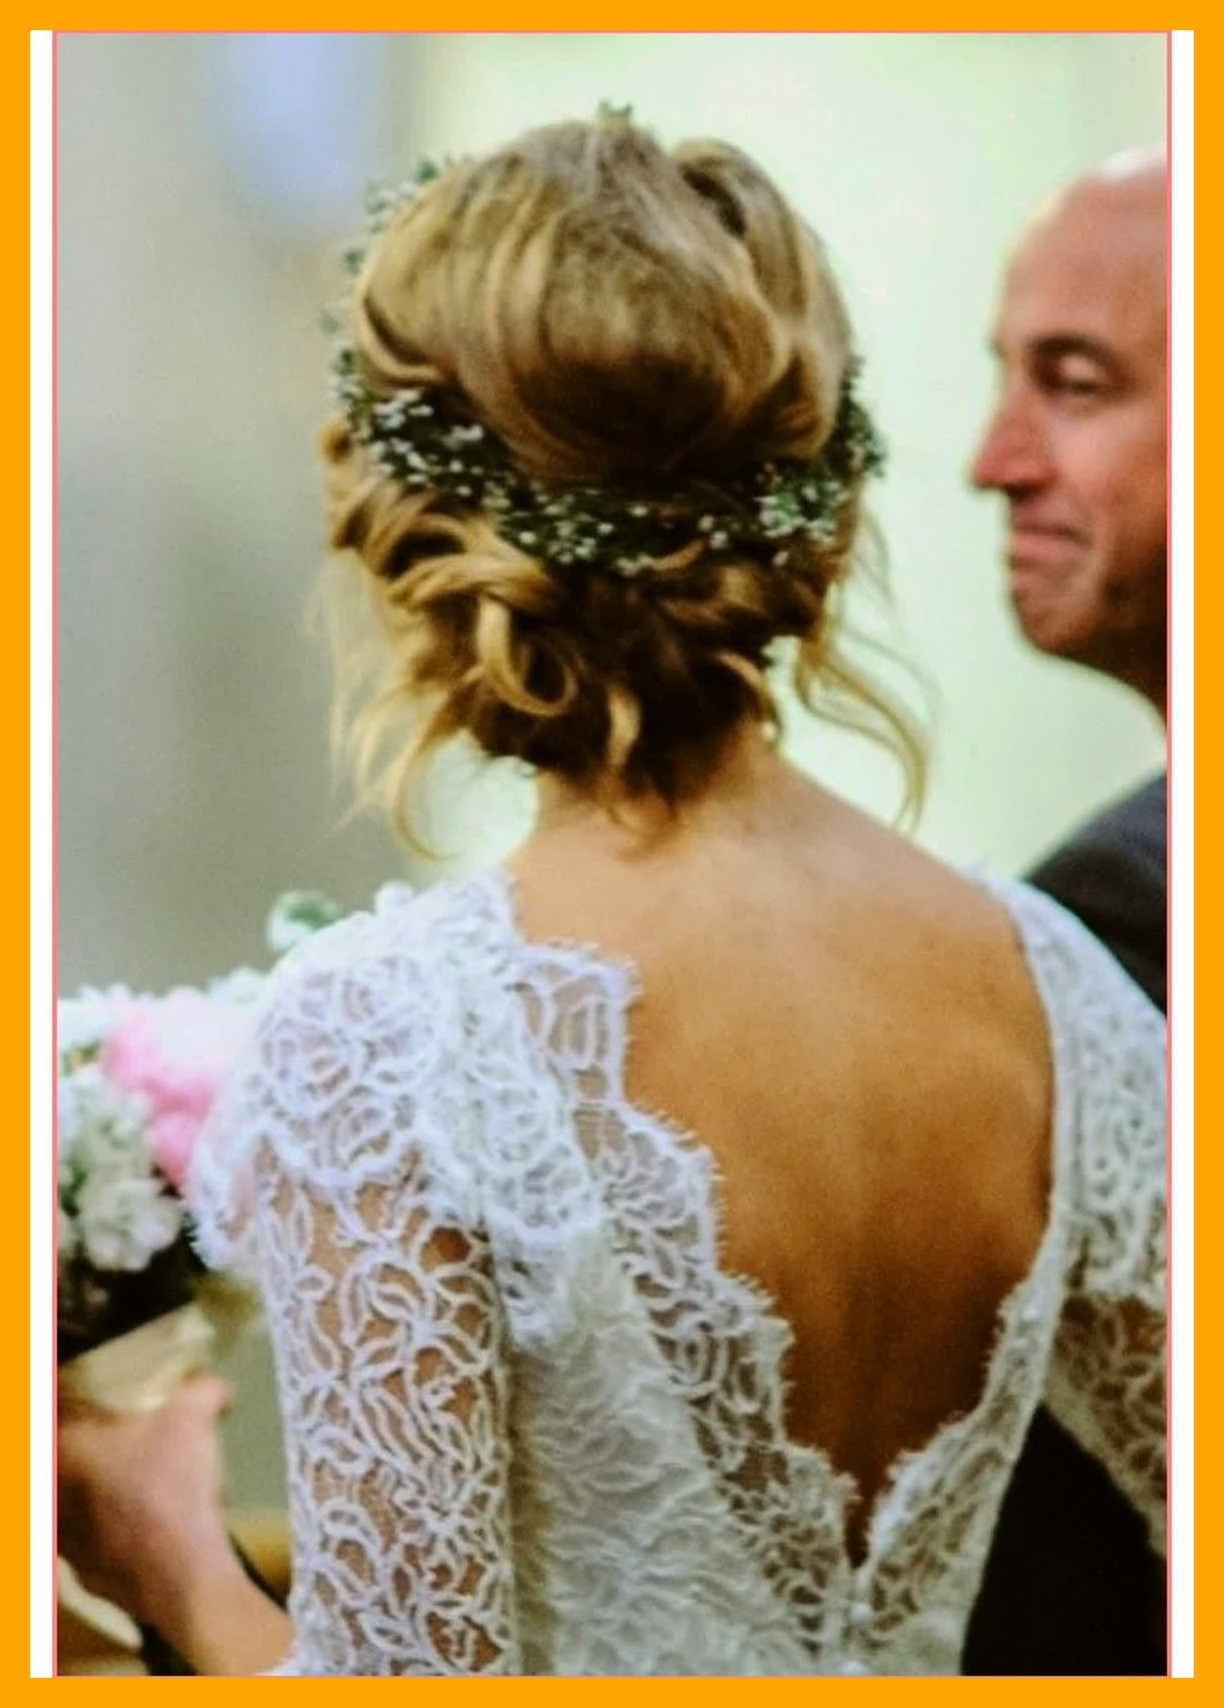 Incredible Best Ideas Vintage Wedding Hairstyles Short Hair Of For Intended For Favorite Vintage Wedding Hairstyles (Gallery 11 of 15)